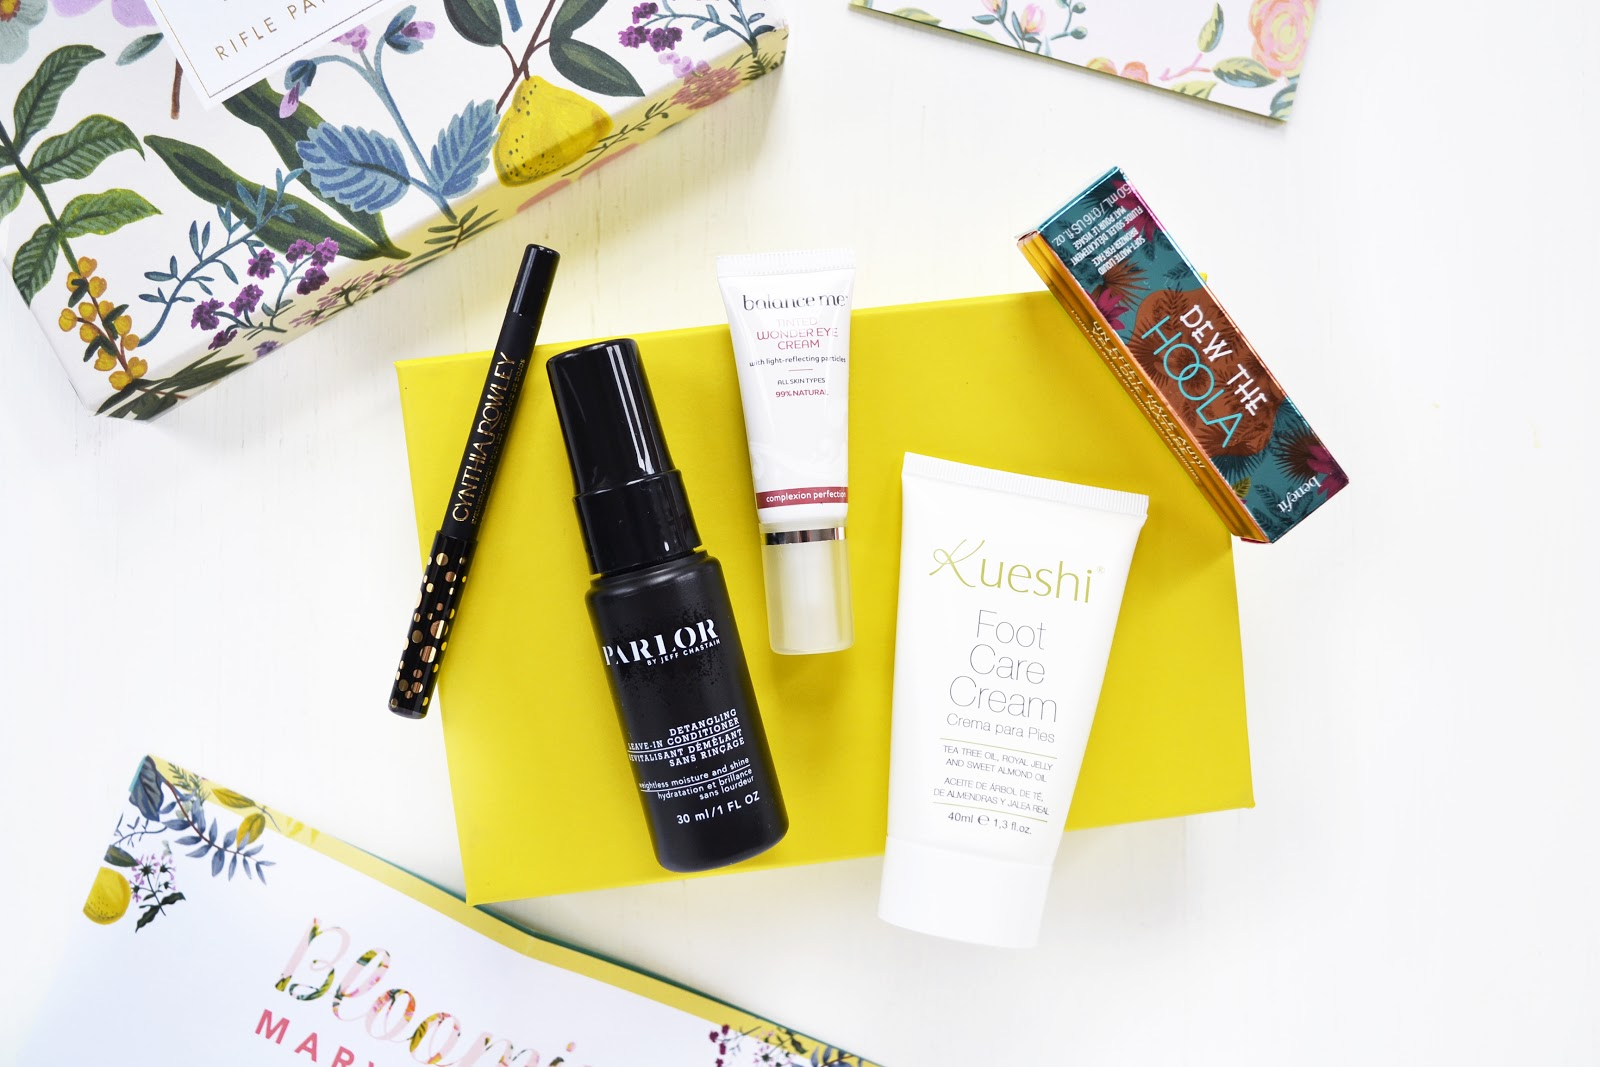 birchbox 2016, Birchbox April 2016 collaborated With Rifle Paper Co